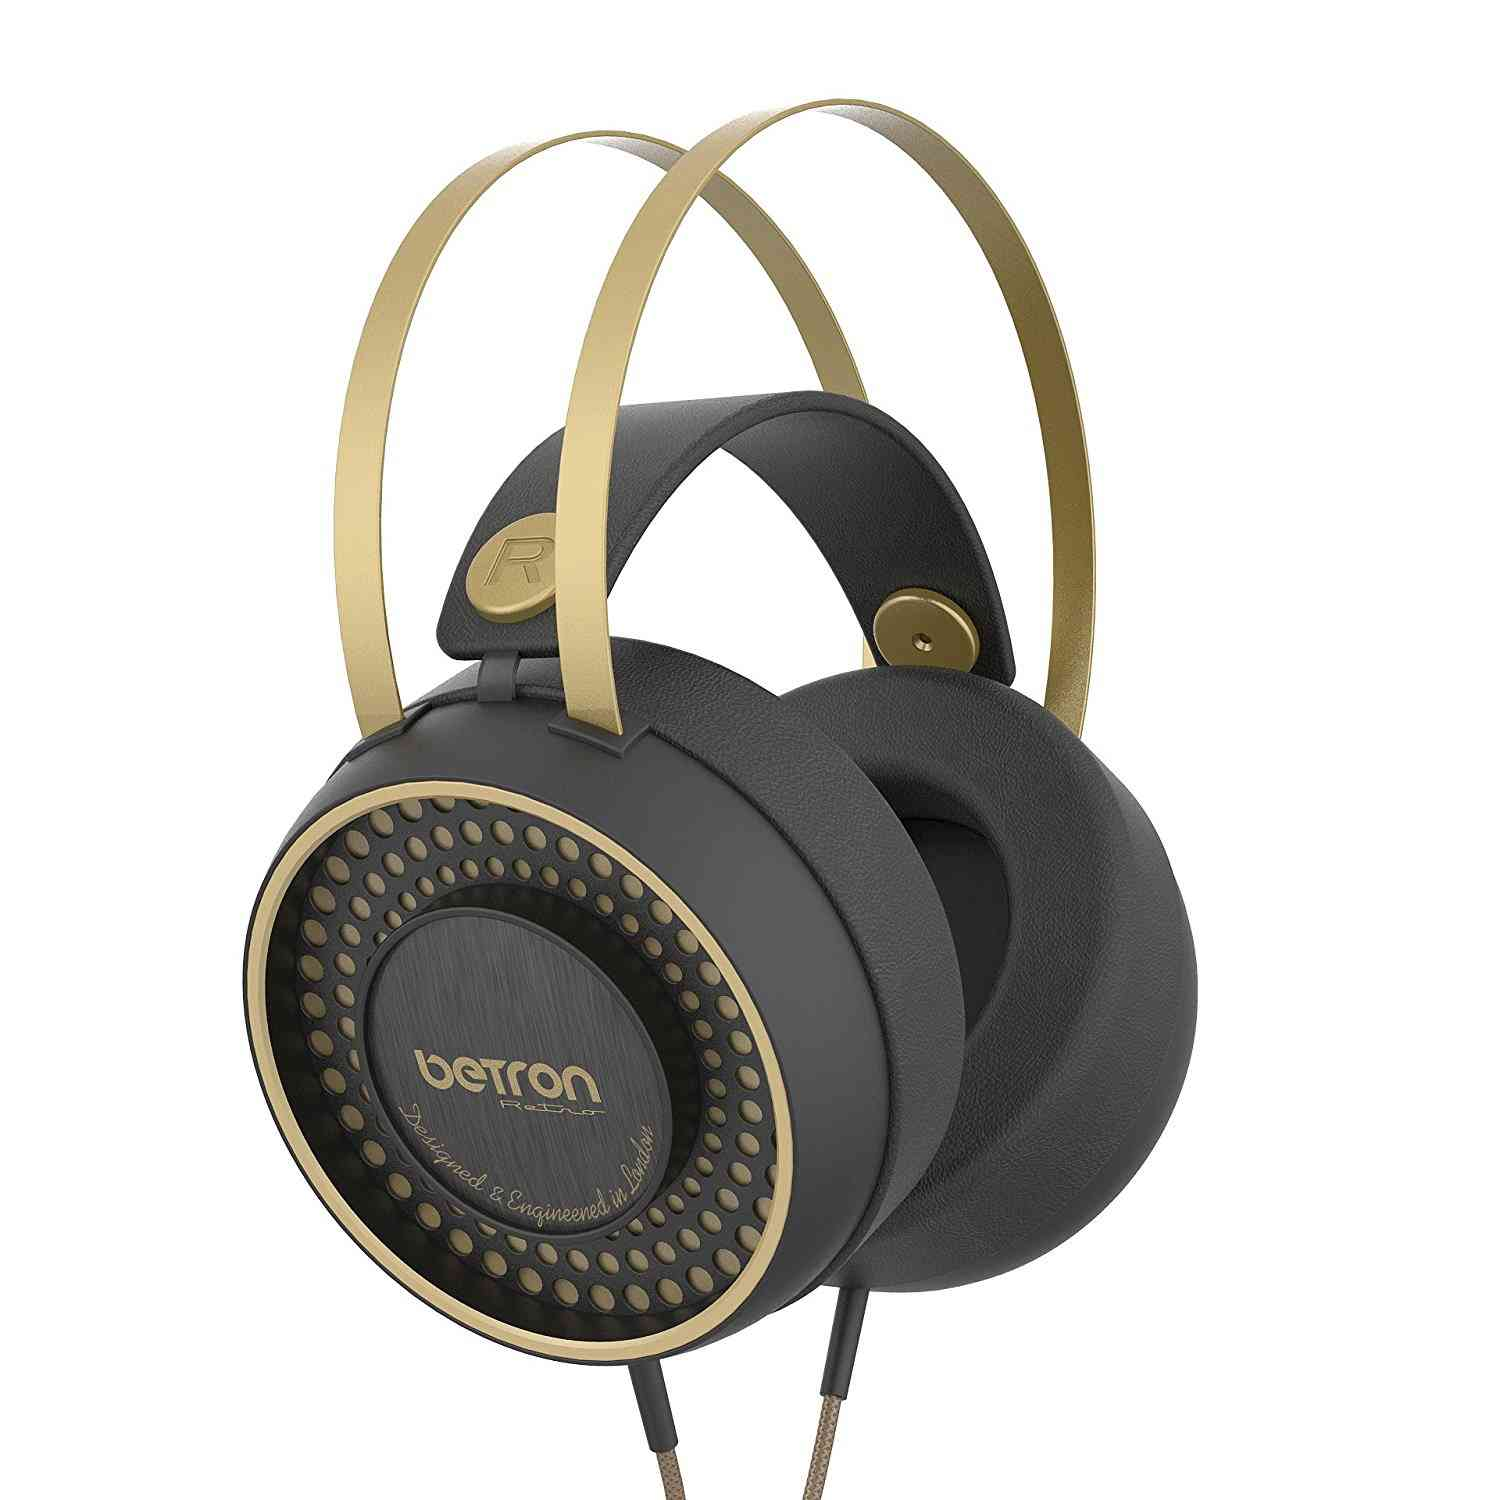 betron retro headphones